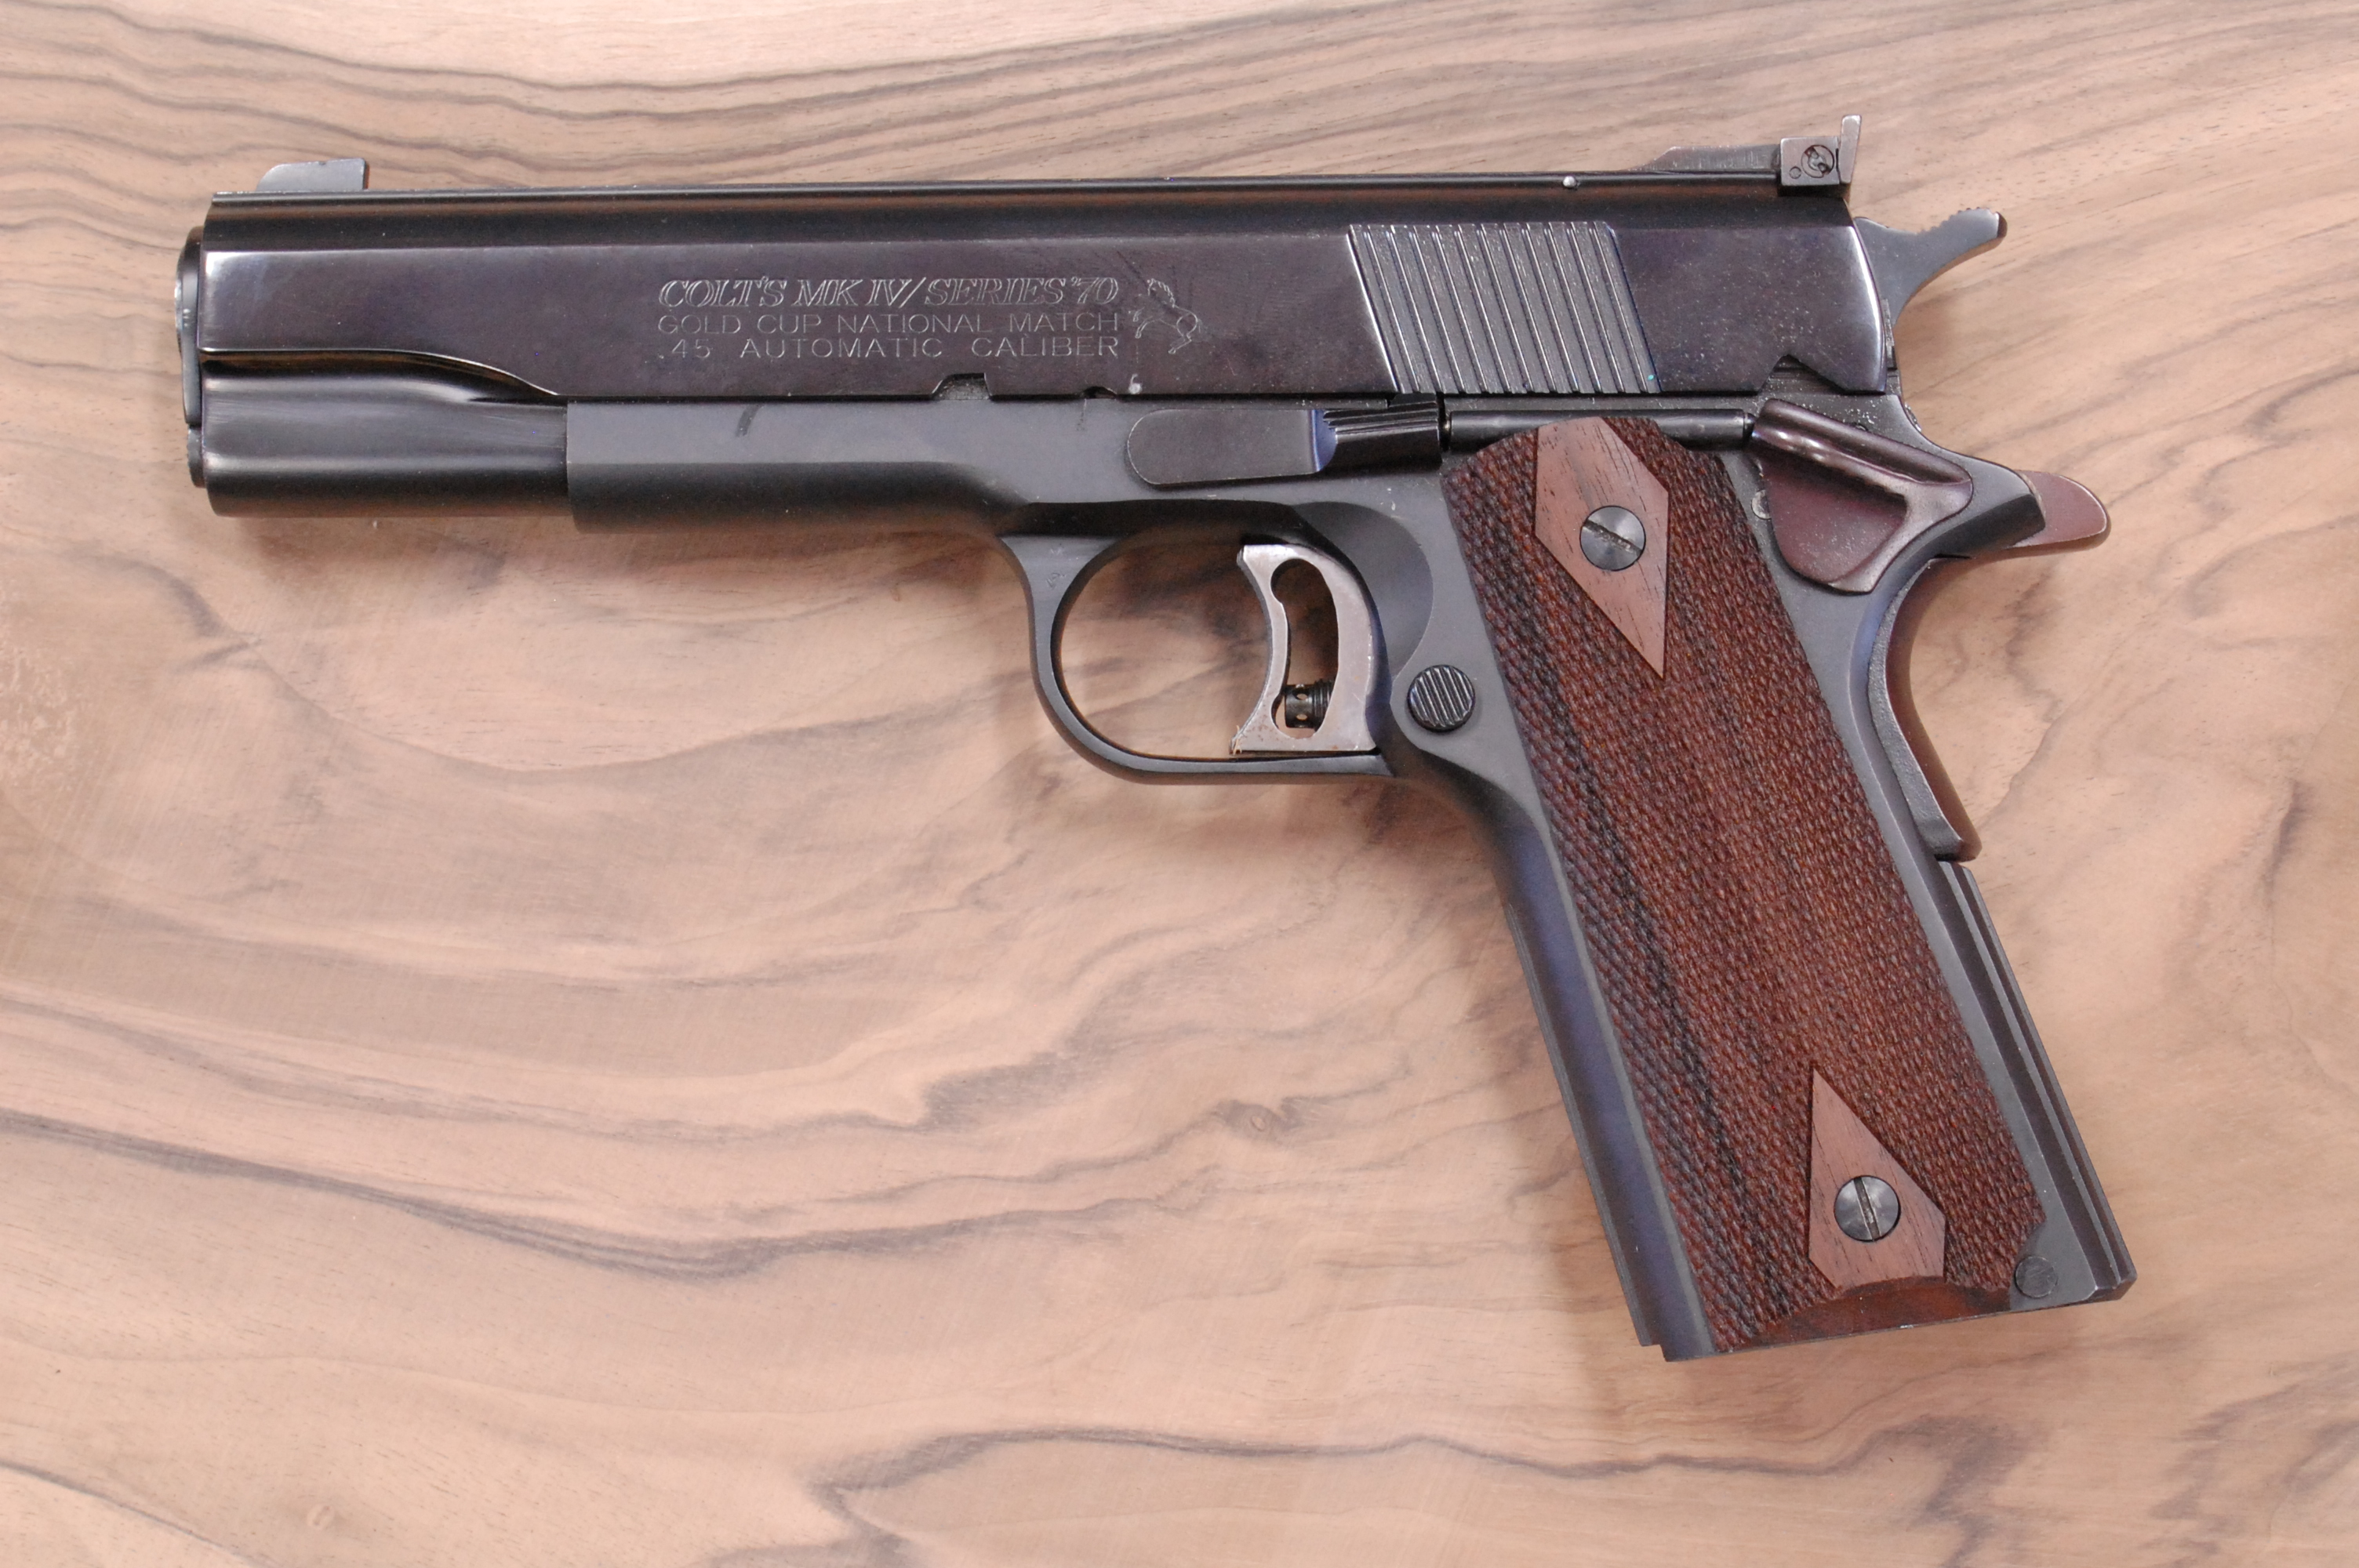 COLT 1911 GRIPS (checkered) - full size